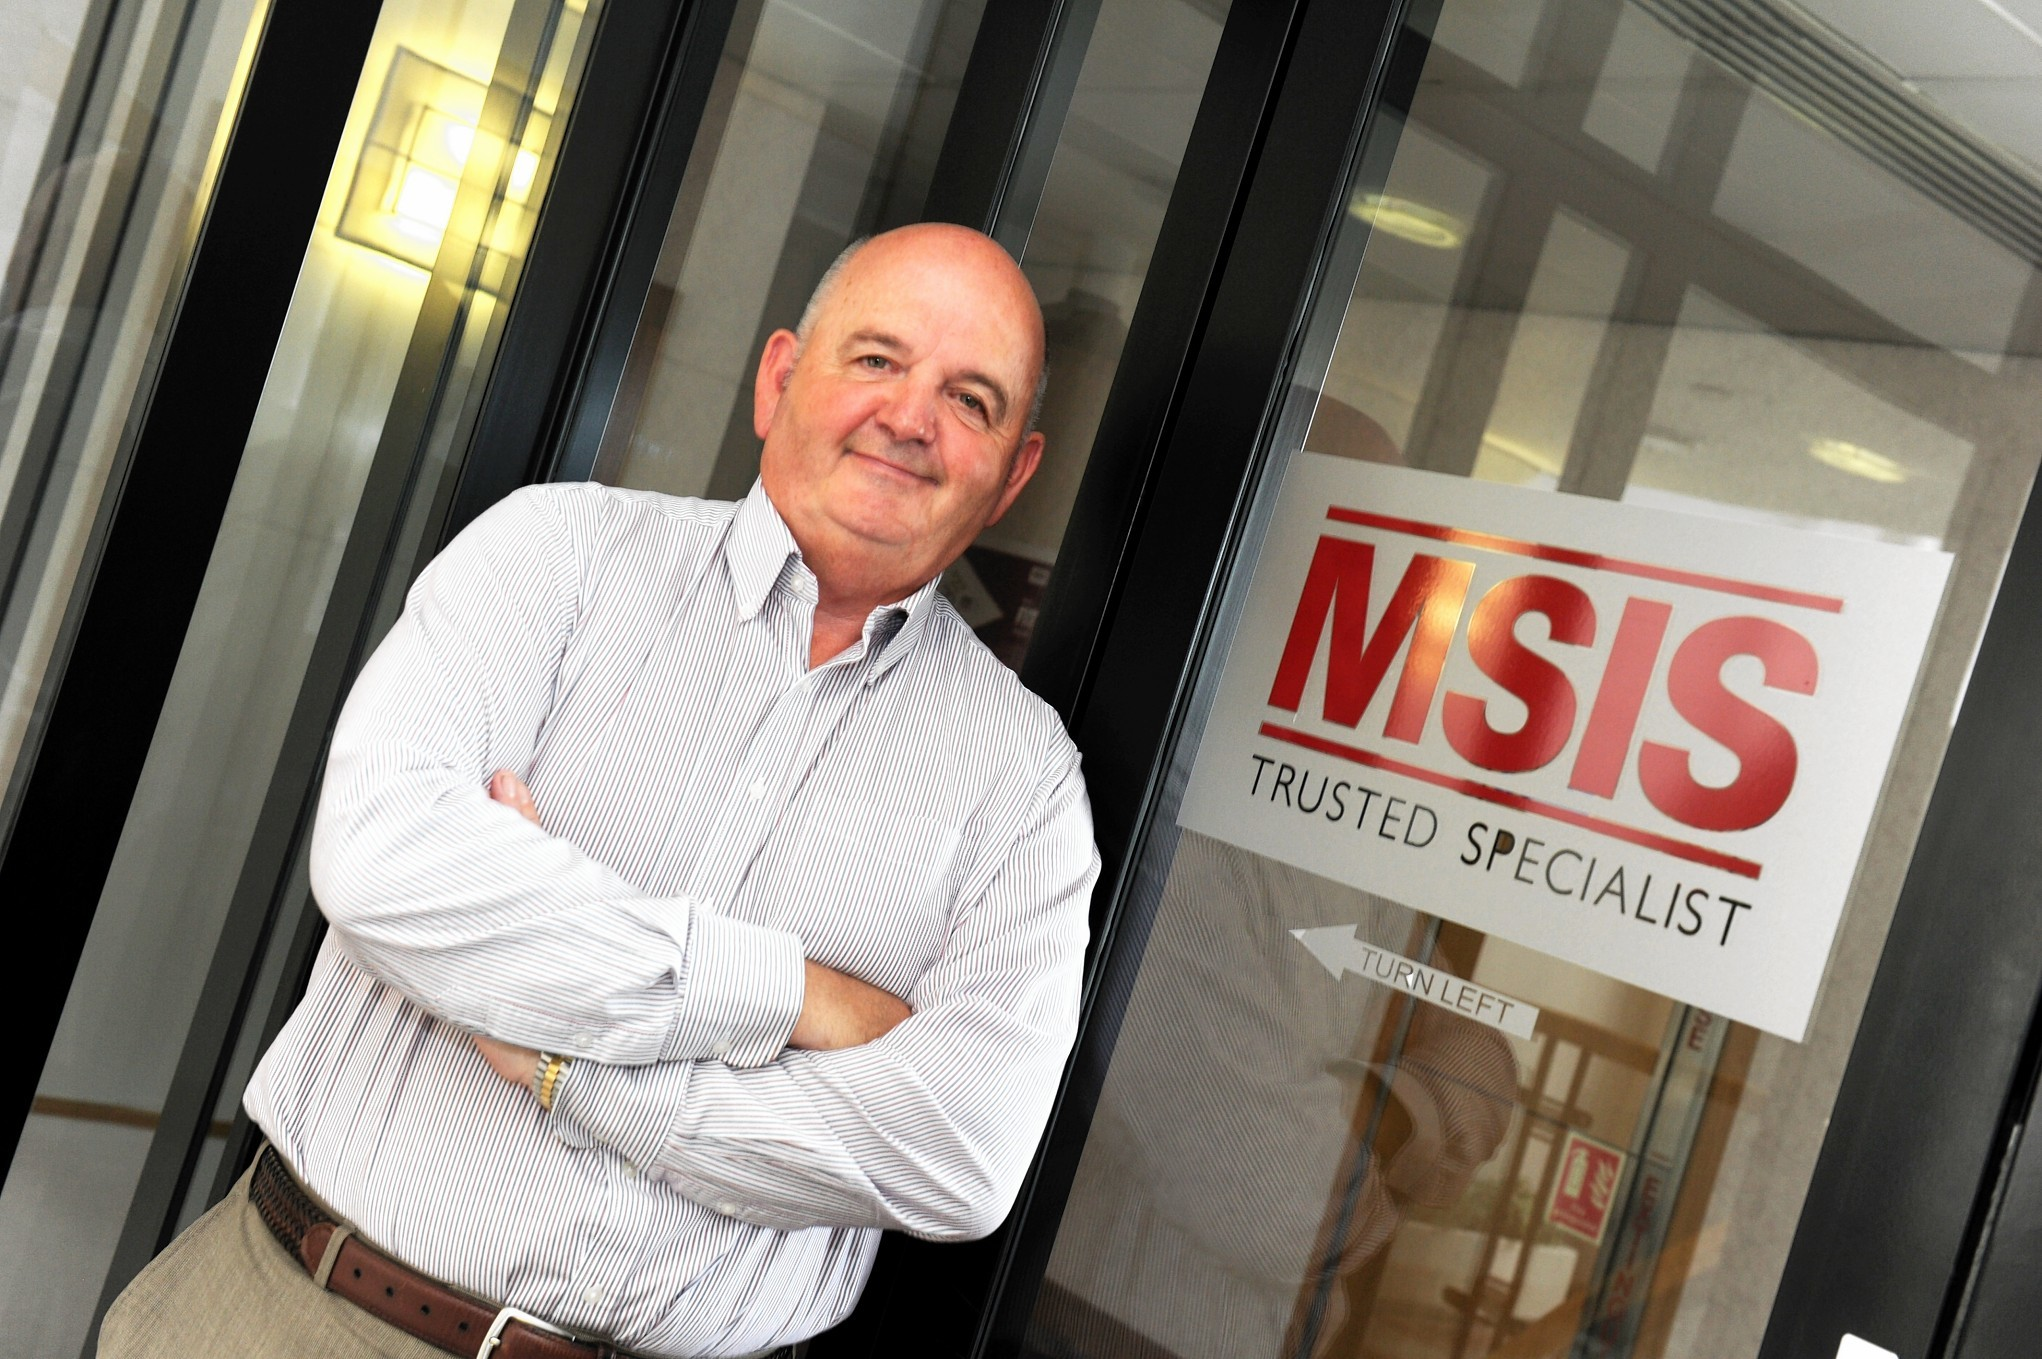 MSIS managing director Ian McPherson